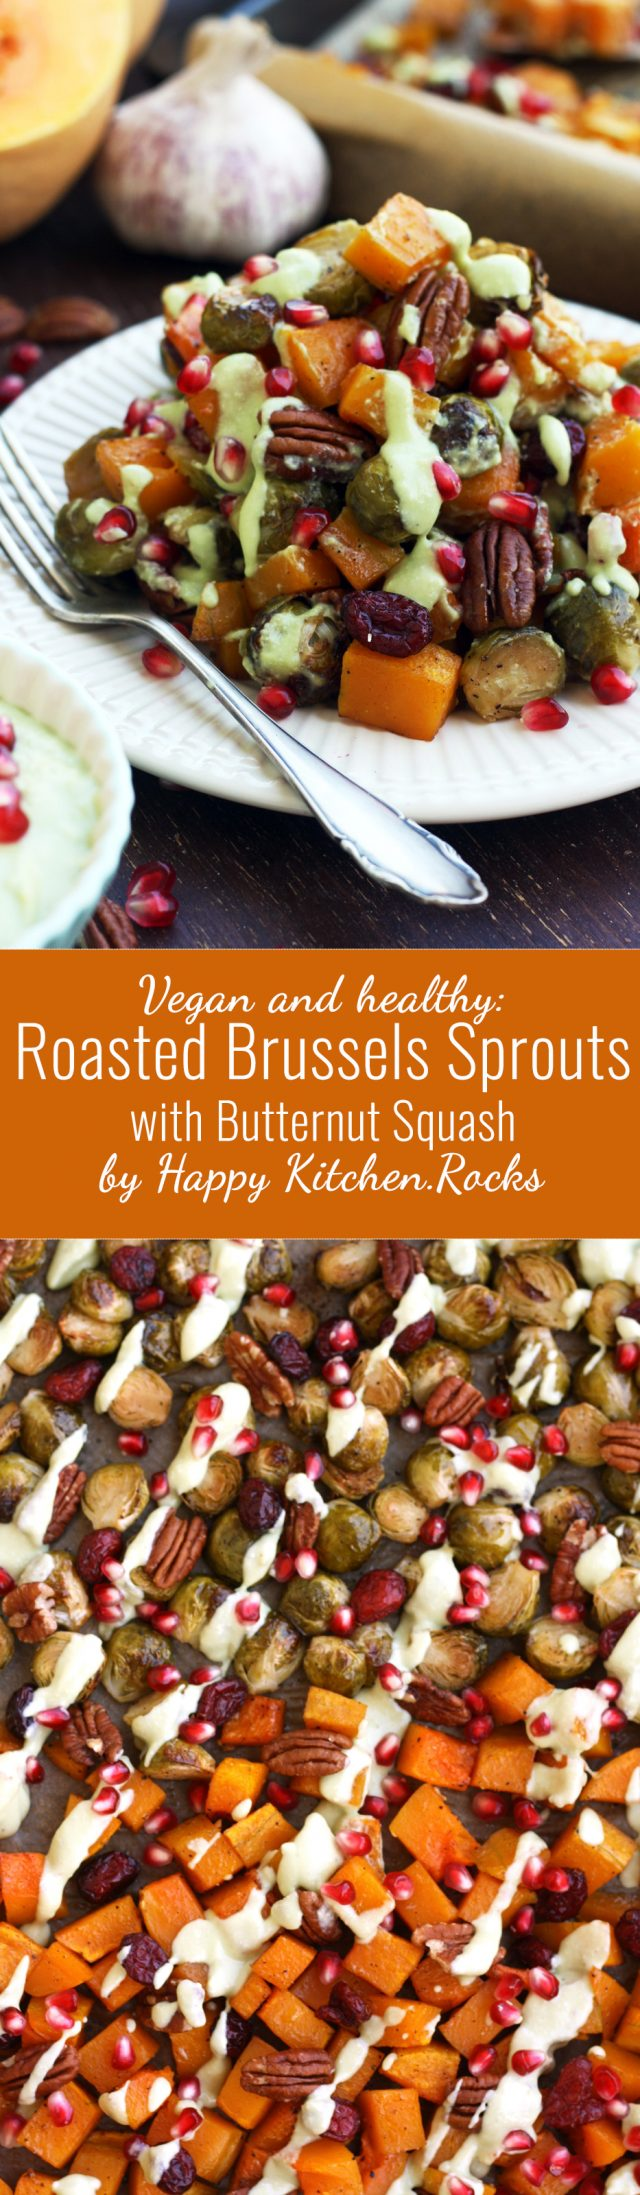 Roasted Brussels Sprouts with Butternut Squash Super Long Collage of Two Images and Text Overlay